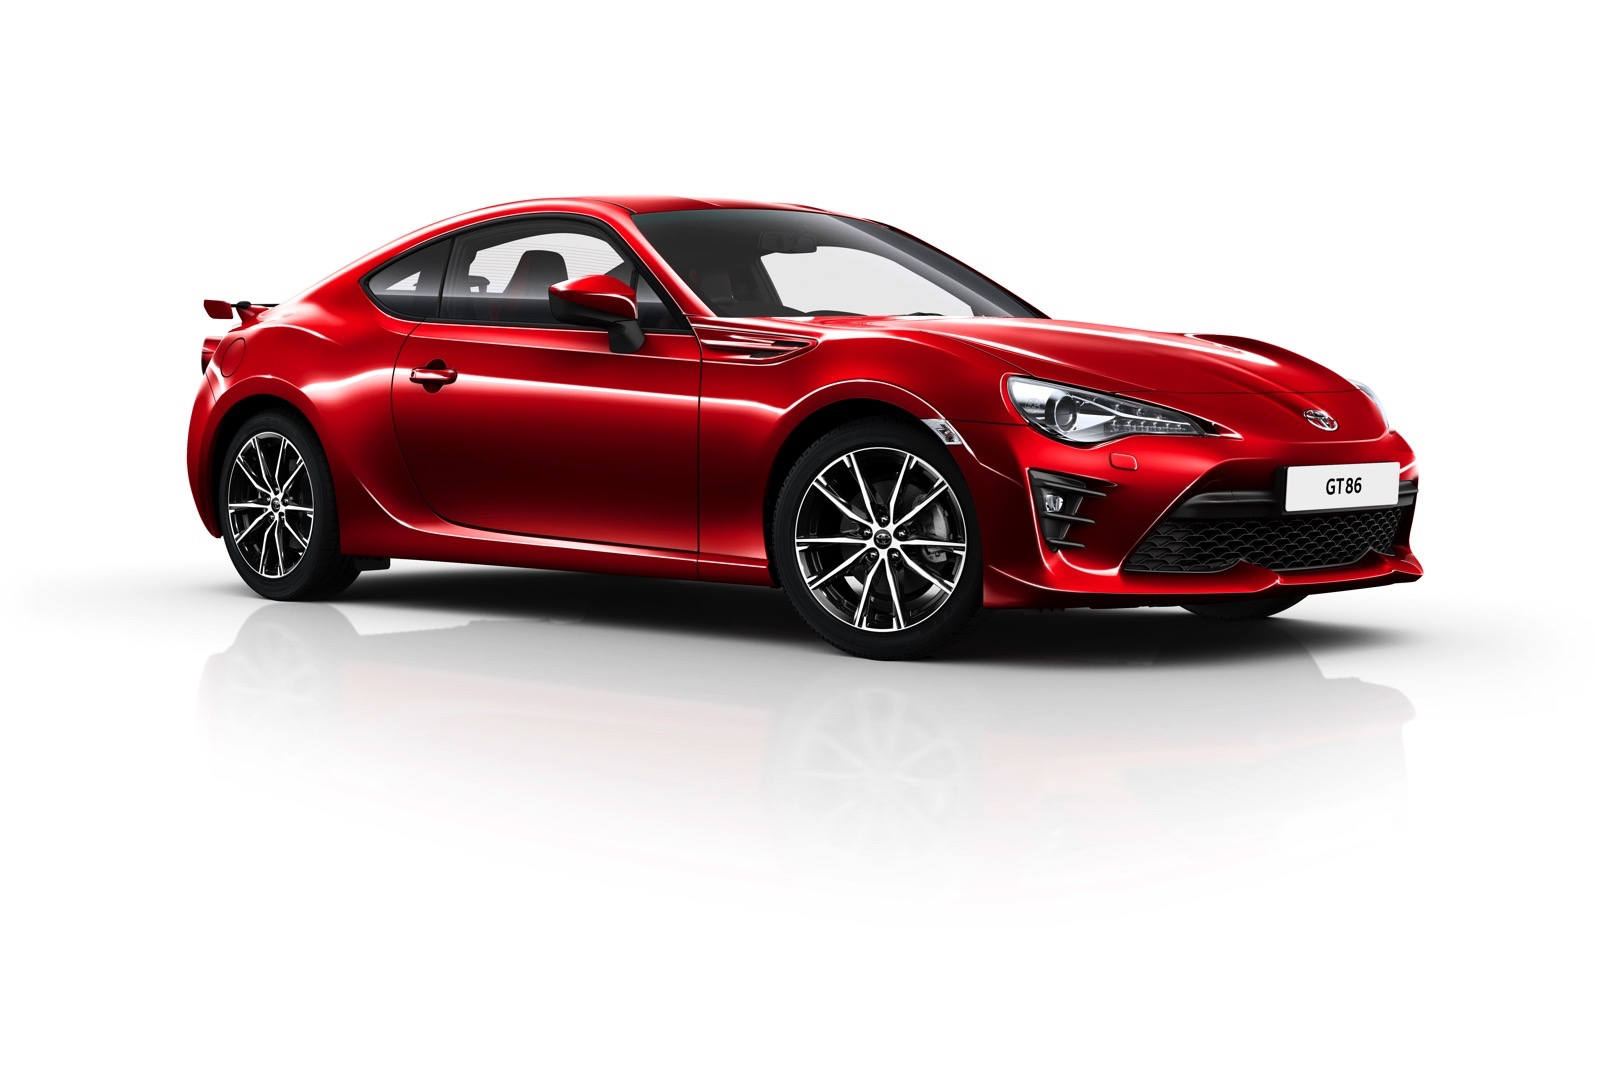 2017 Toyota GT86 Priced From £25,495 In the United Kingdom ...